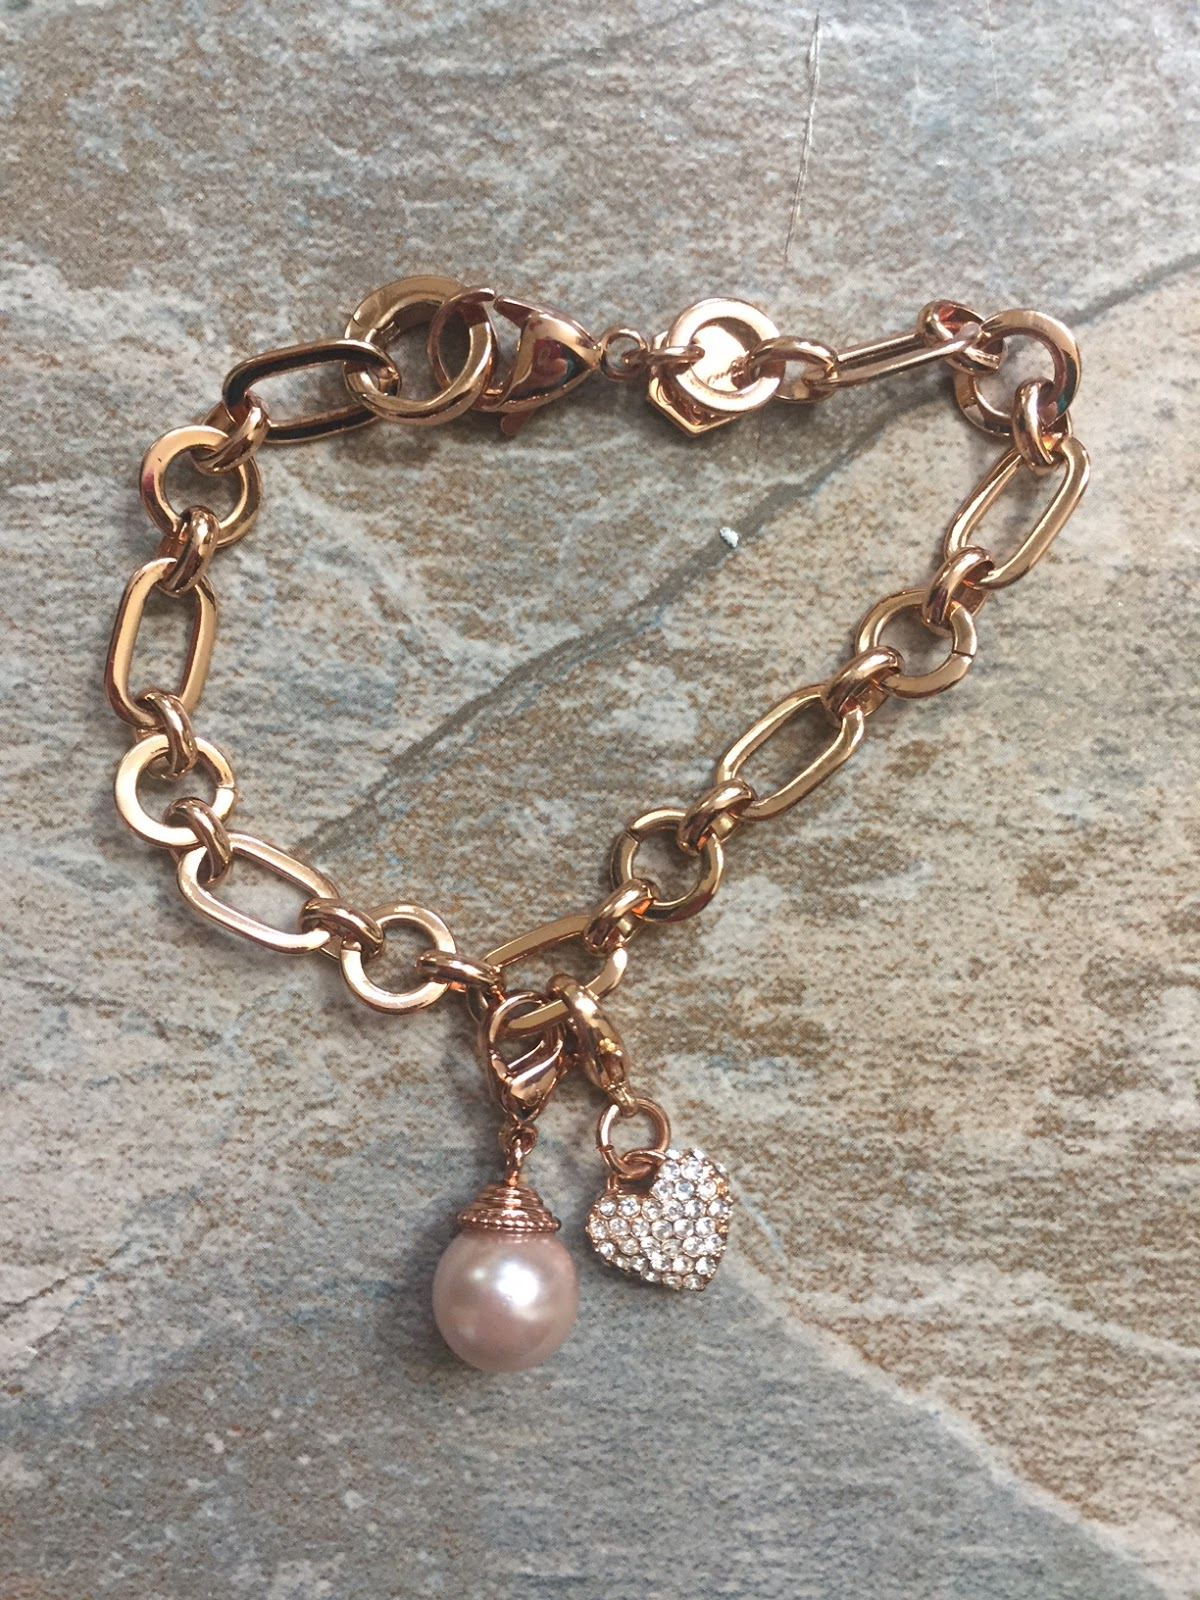 Mommys favorite things origami owl with tonya review giveaway im in love with this bracelet the chain bracelet is so simple but so elegant and classic i love the rose gold shade and i currently dont own any rose jeuxipadfo Image collections